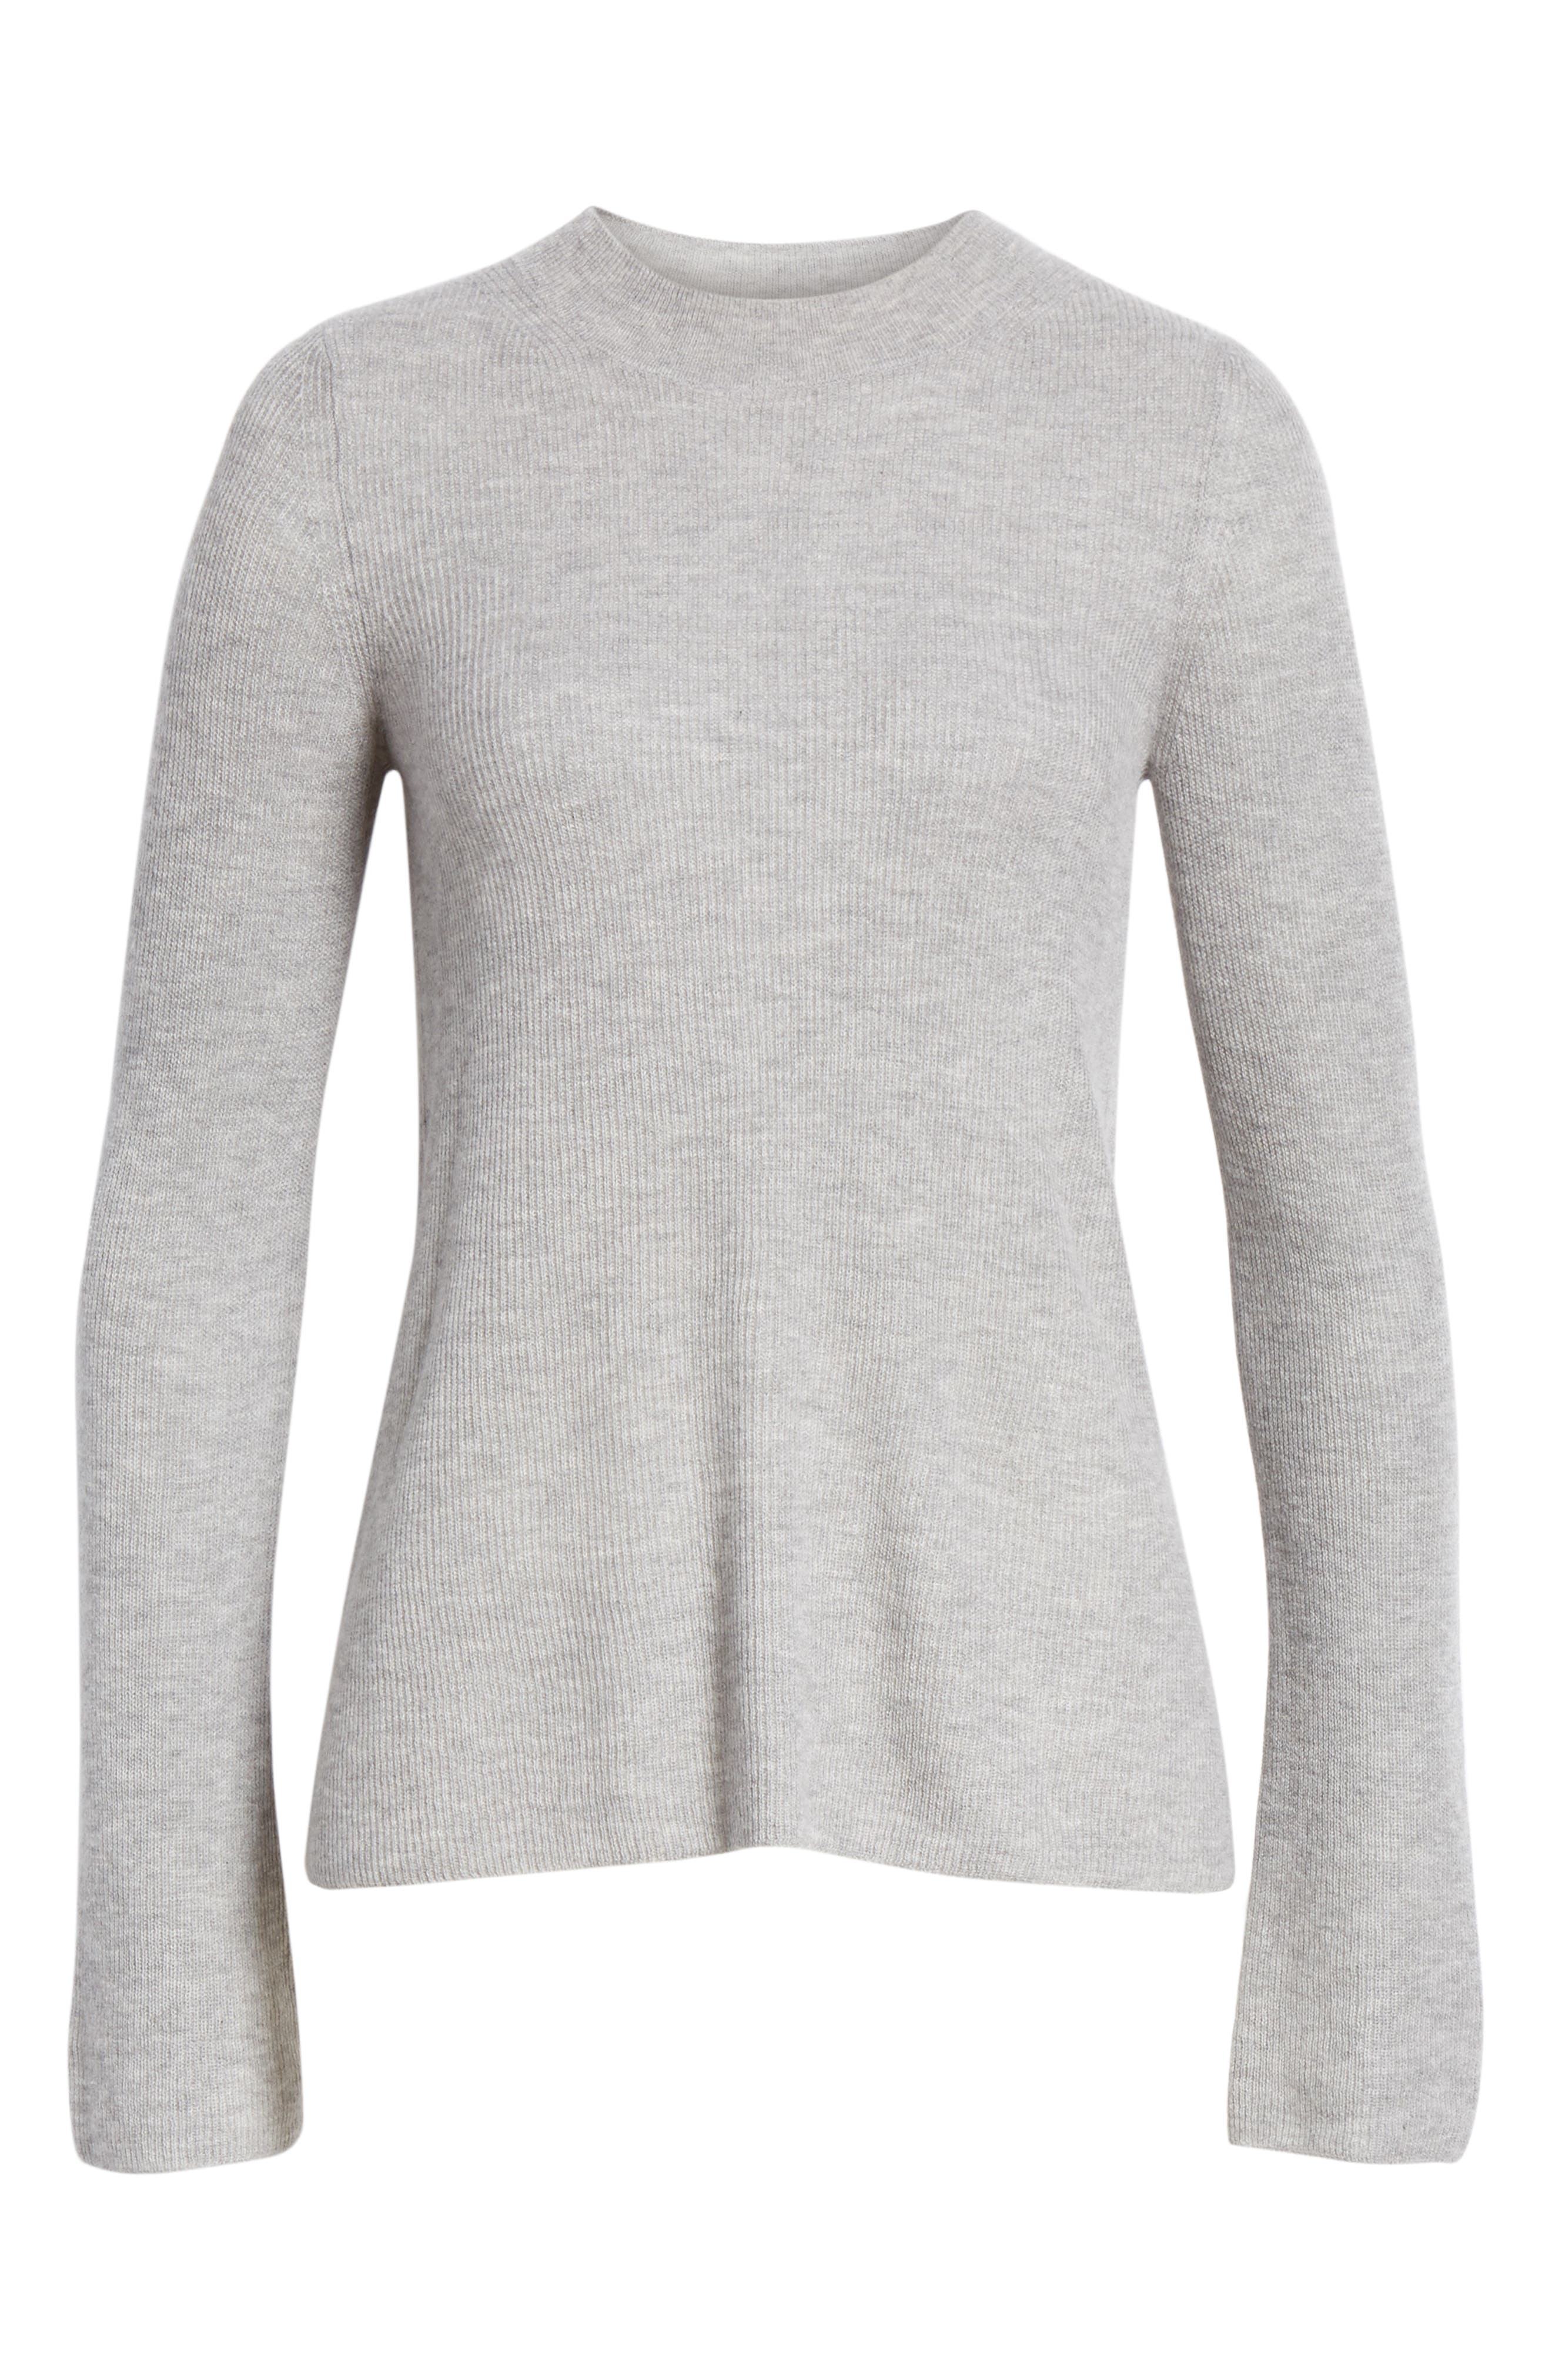 Ribbed Cashmere Sweater,                             Alternate thumbnail 6, color,                             060